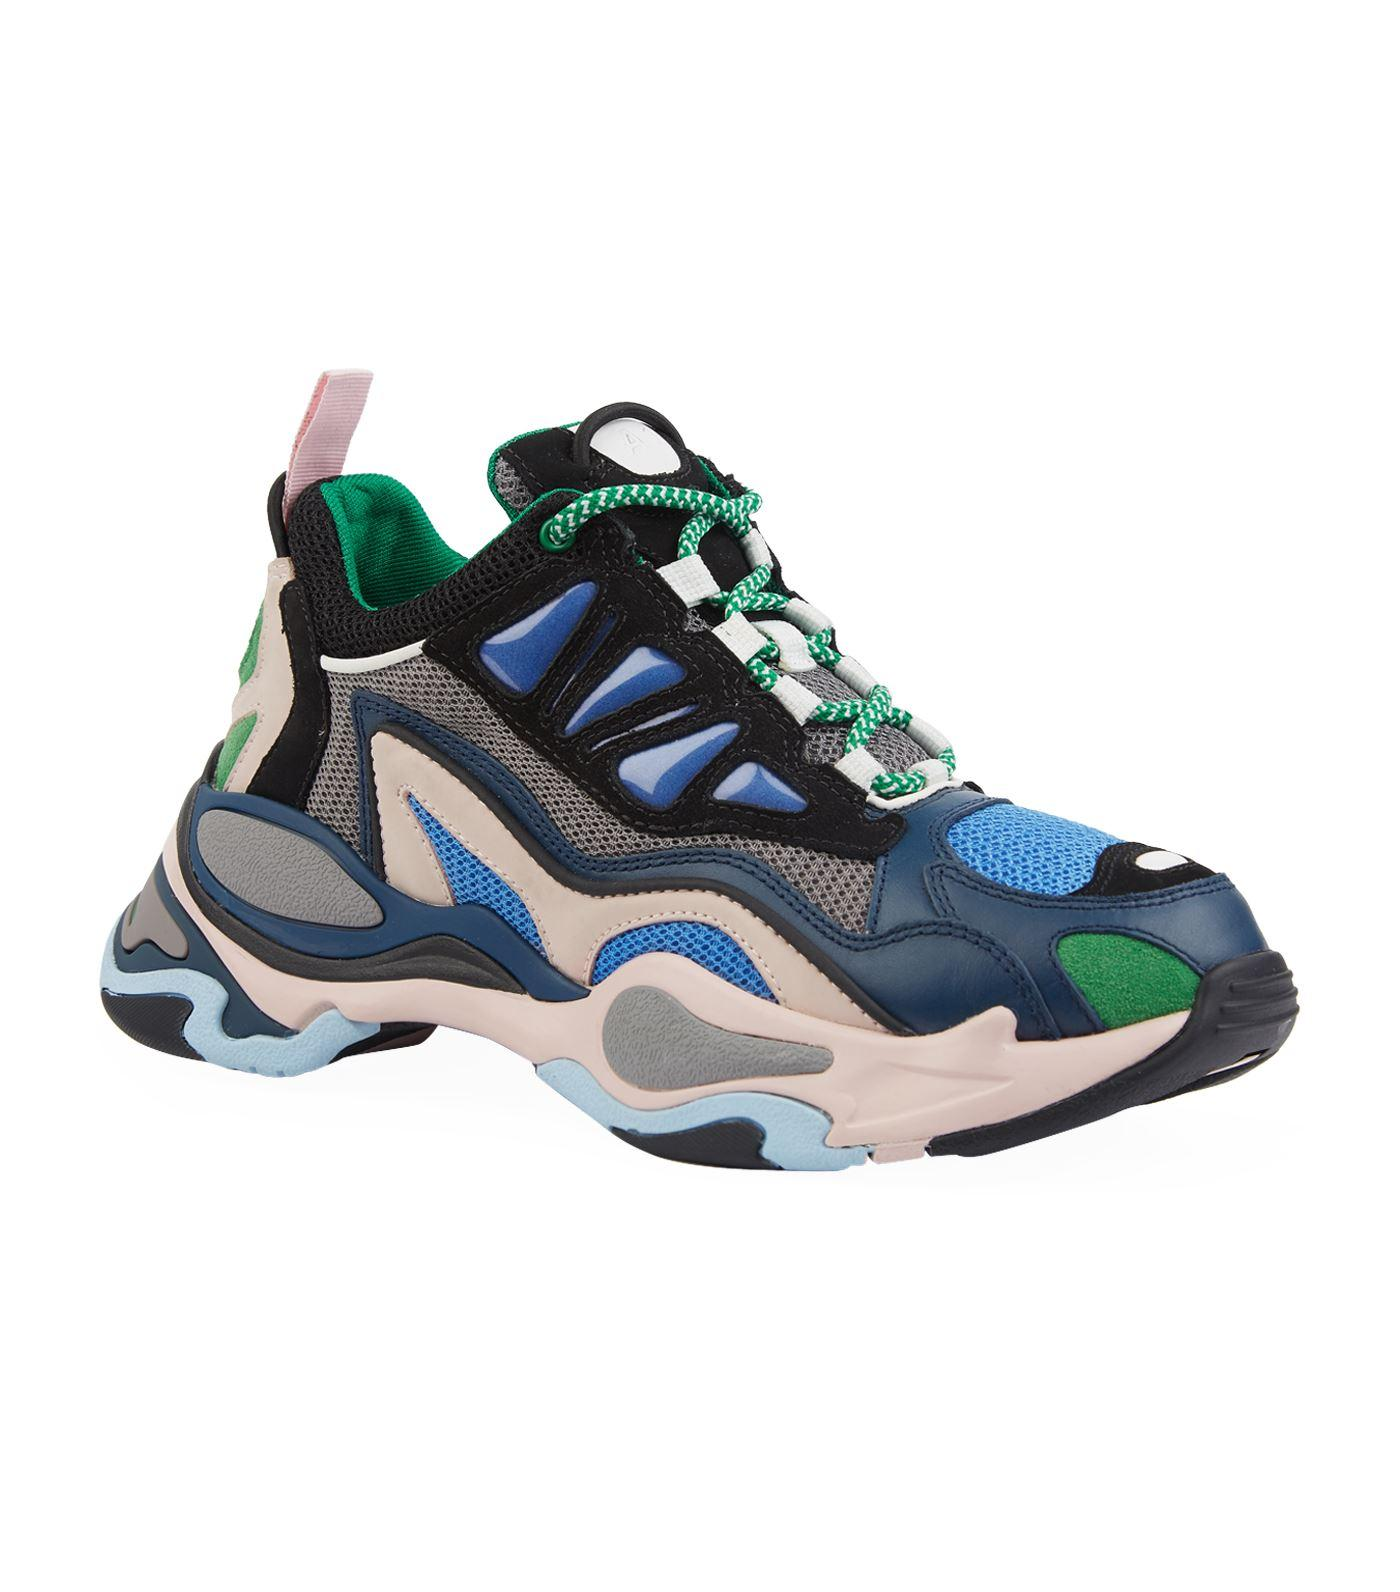 9ab93e75d1 Lyst - Sandro Astro 1 Sneakers in Blue